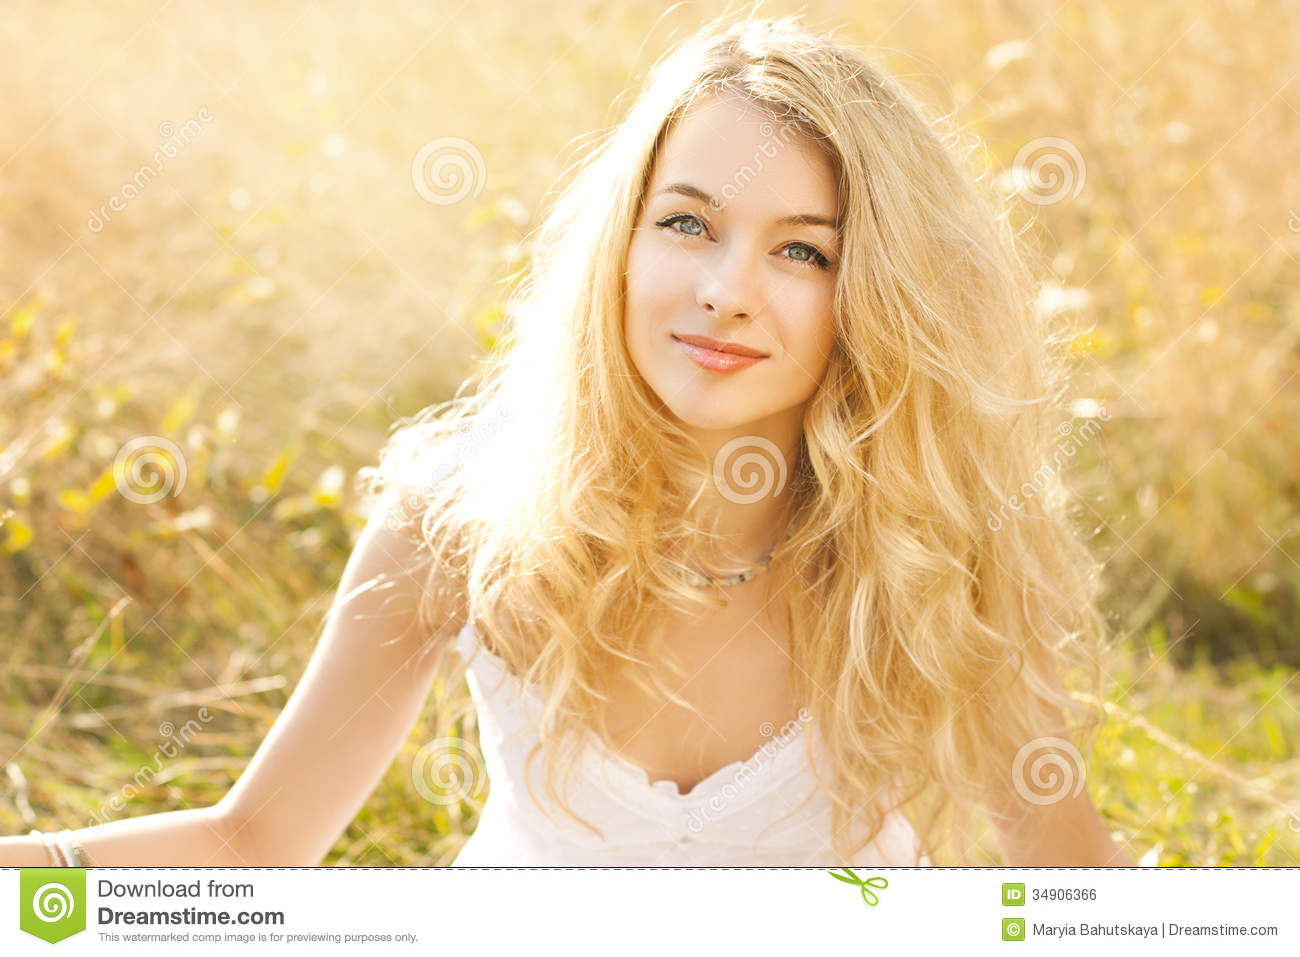 portrait-happy-woman-nature-background-b